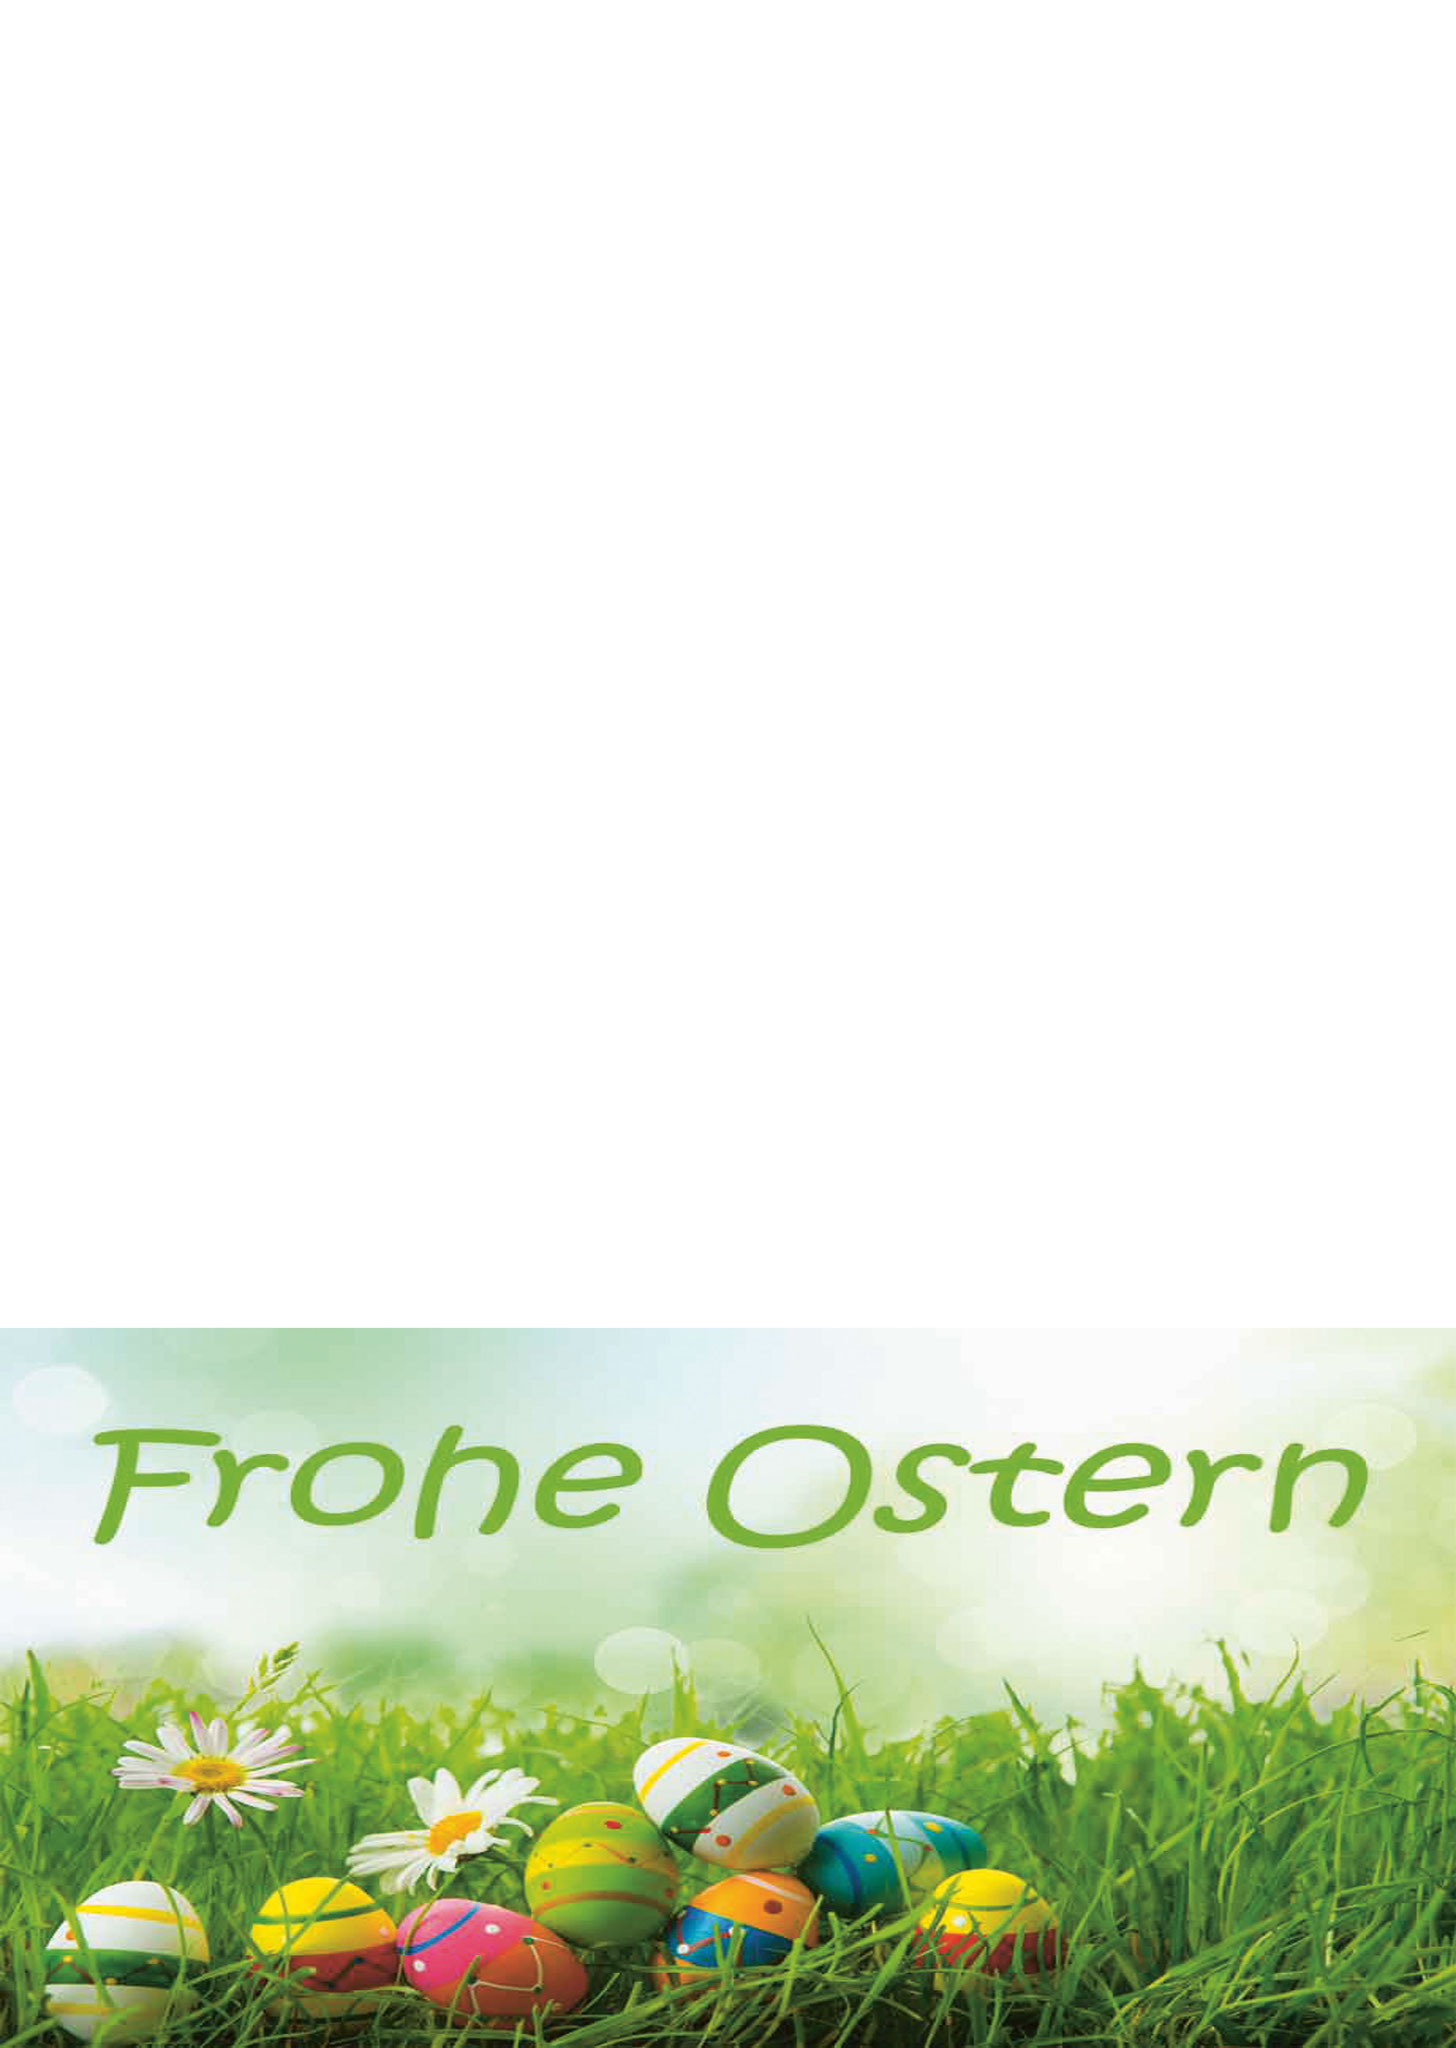 Briefpapier Frohe Ostern